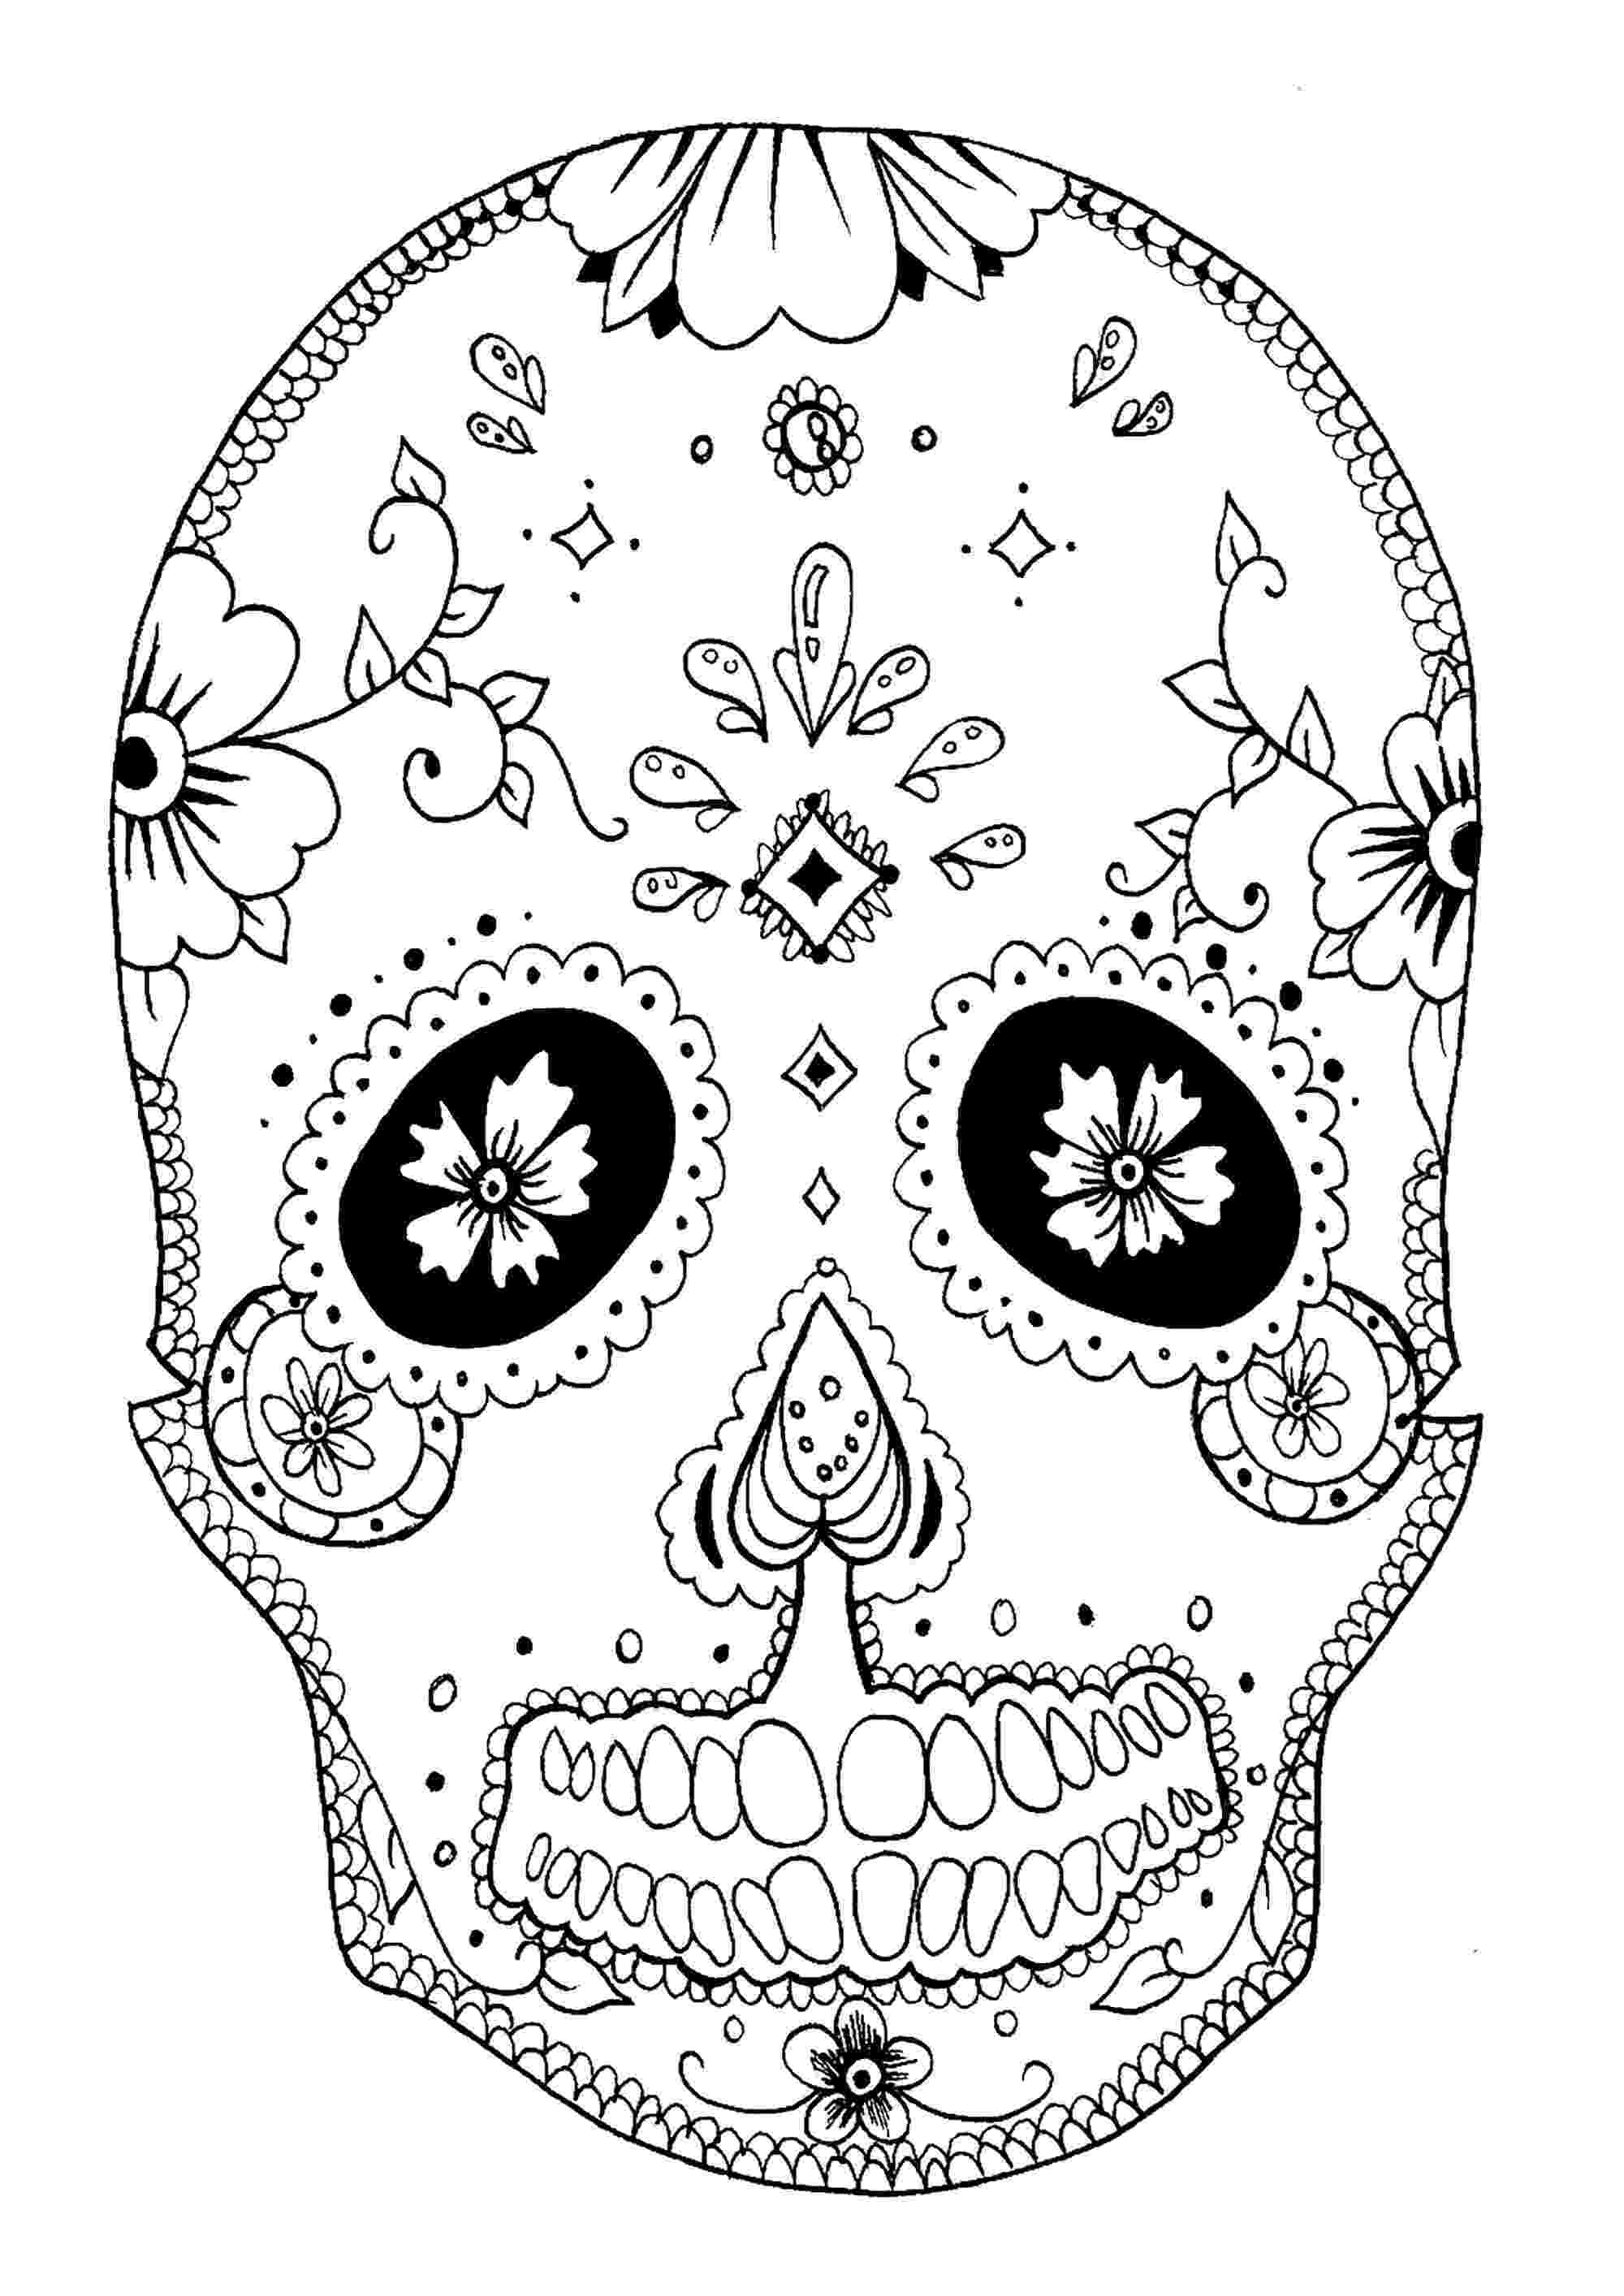 coloring books for grown ups dia de los muertos el dia de los muertos skull hand drawing el día de los books ups grown de los muertos coloring for dia